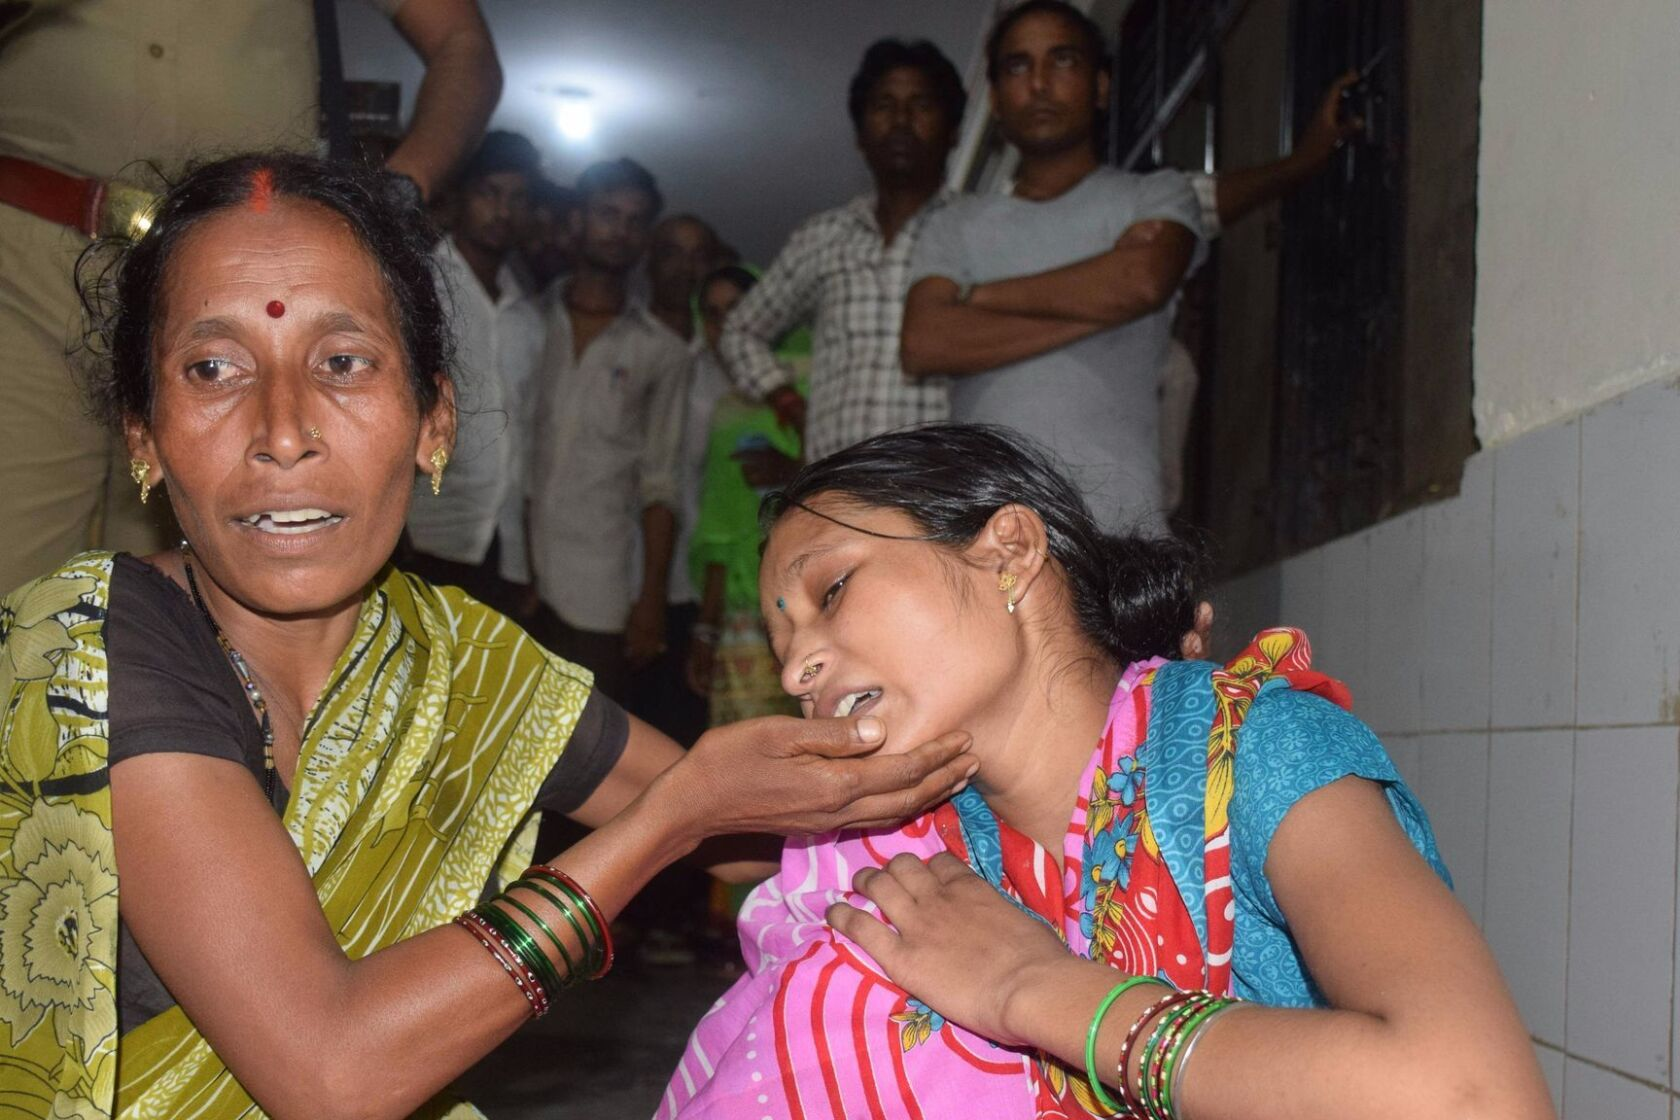 35 children in Indian hospital in 3 days parents blame